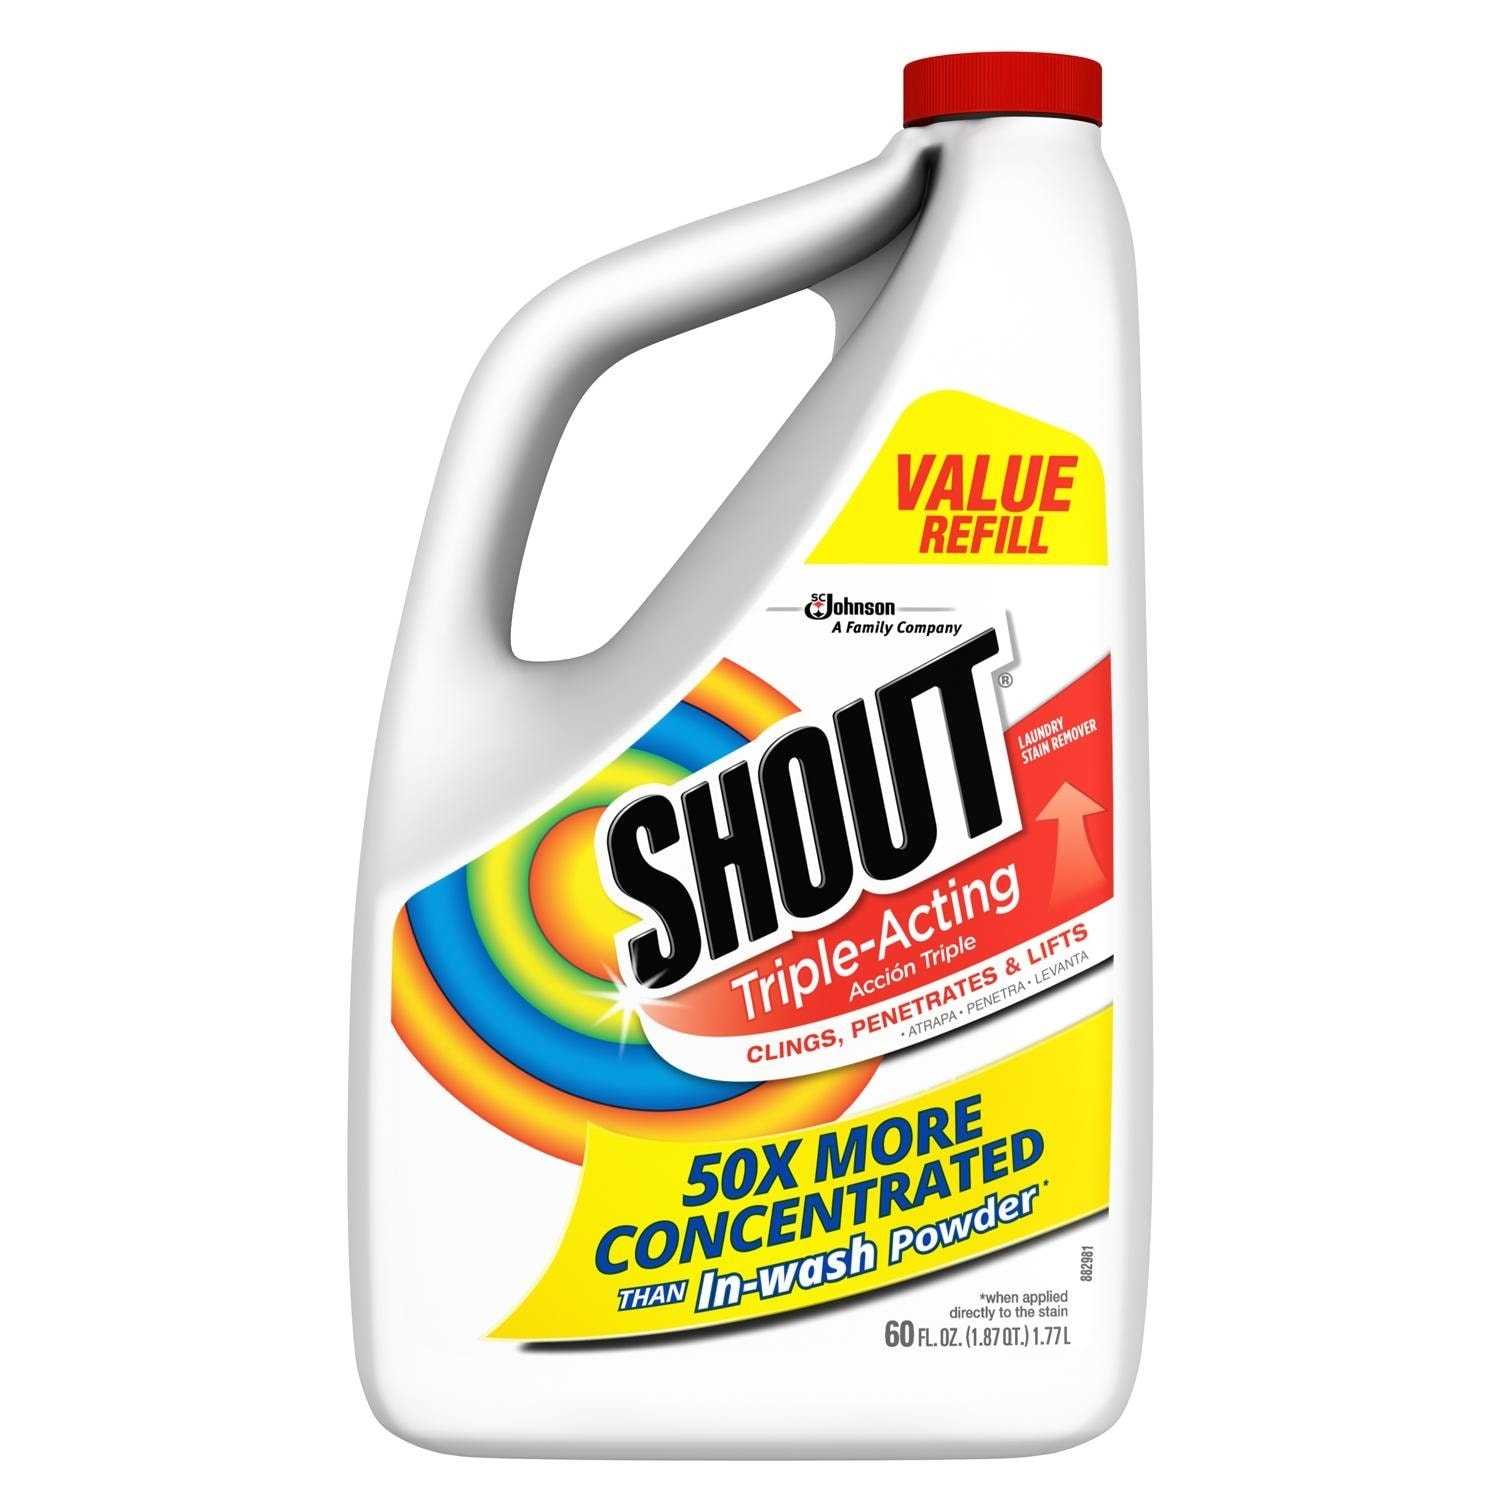 Shout 02274 Laundry Stain Remover, 60 Oz